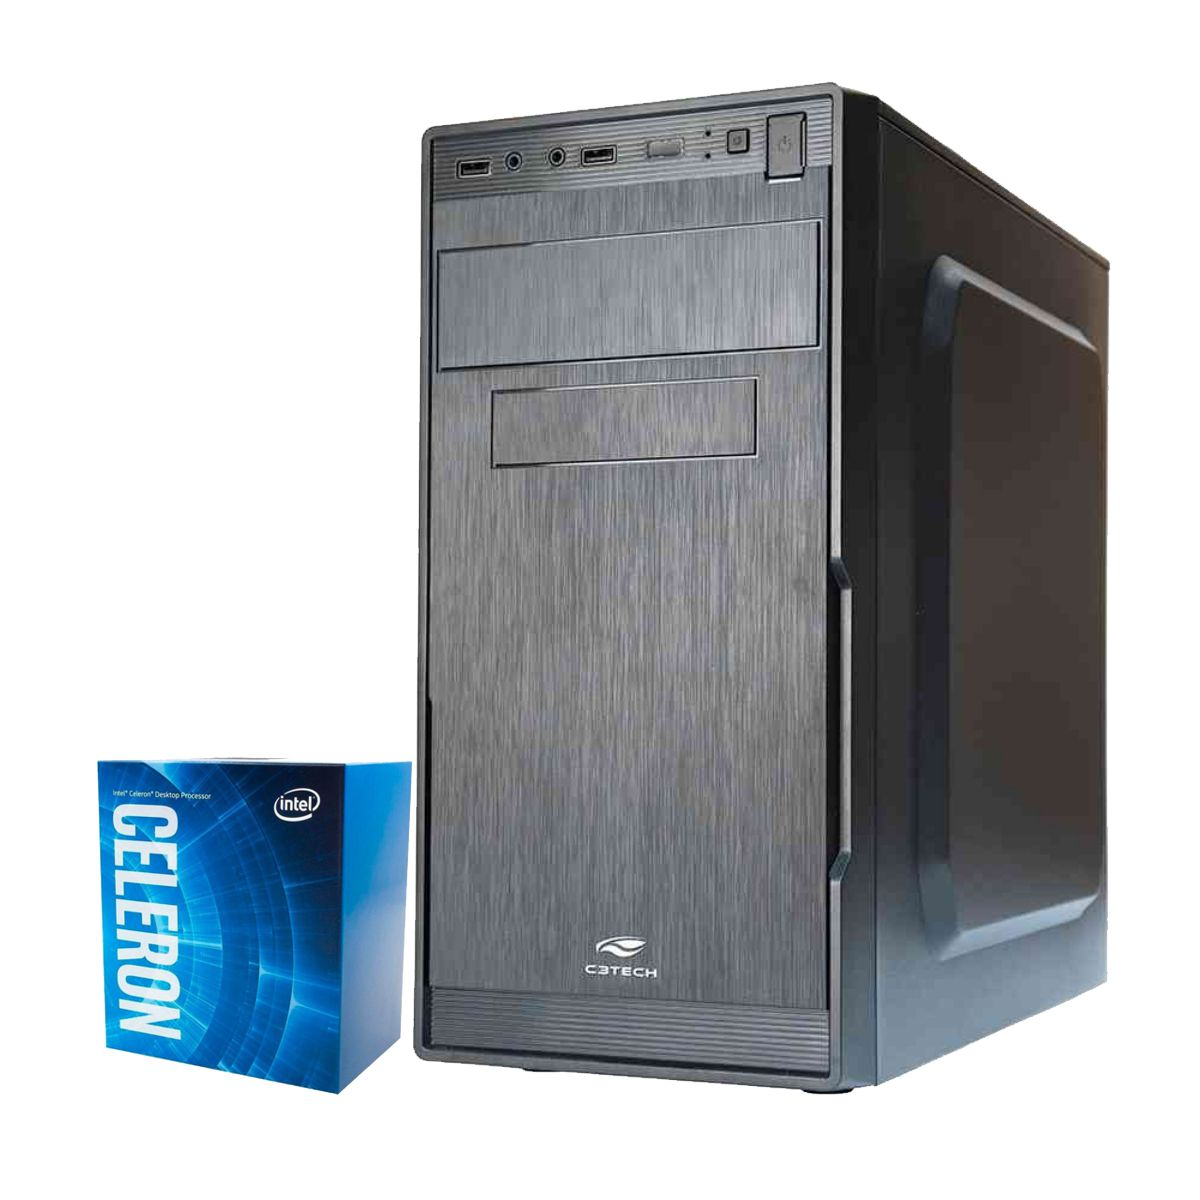 Computador Kit Work/home Intel Celeron G4930 8gb Ddr4 Hd 500gb